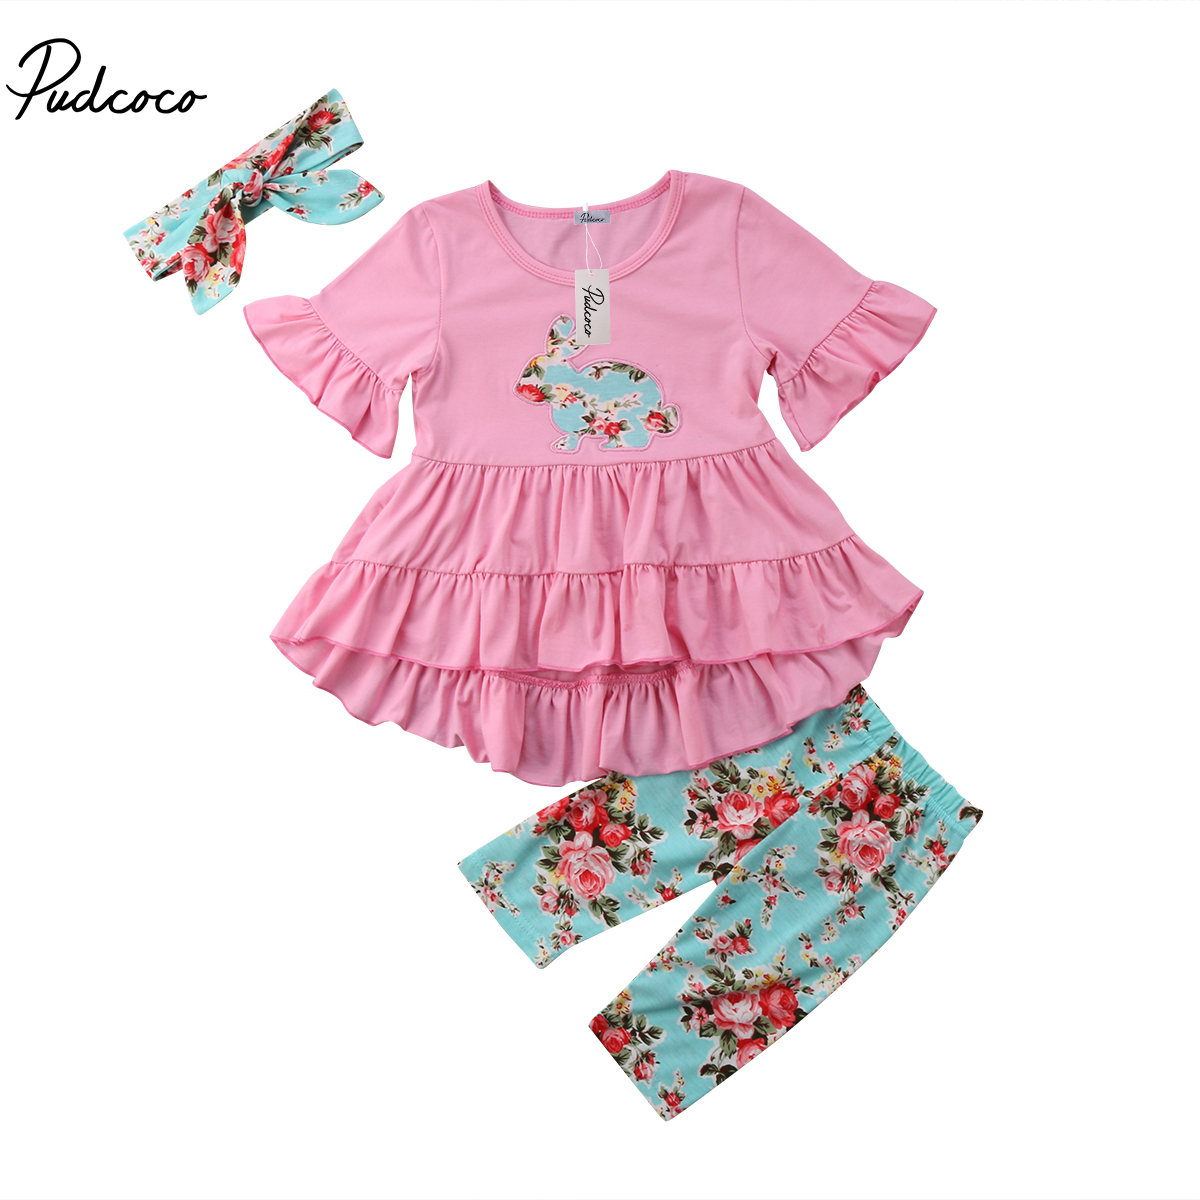 2018 Brand New Toddler Infant Child Kid Baby Girl Easter Top Dress Pants Leggings Outfits Headband 3Pcs Set Ruffled Clothes 2-7T